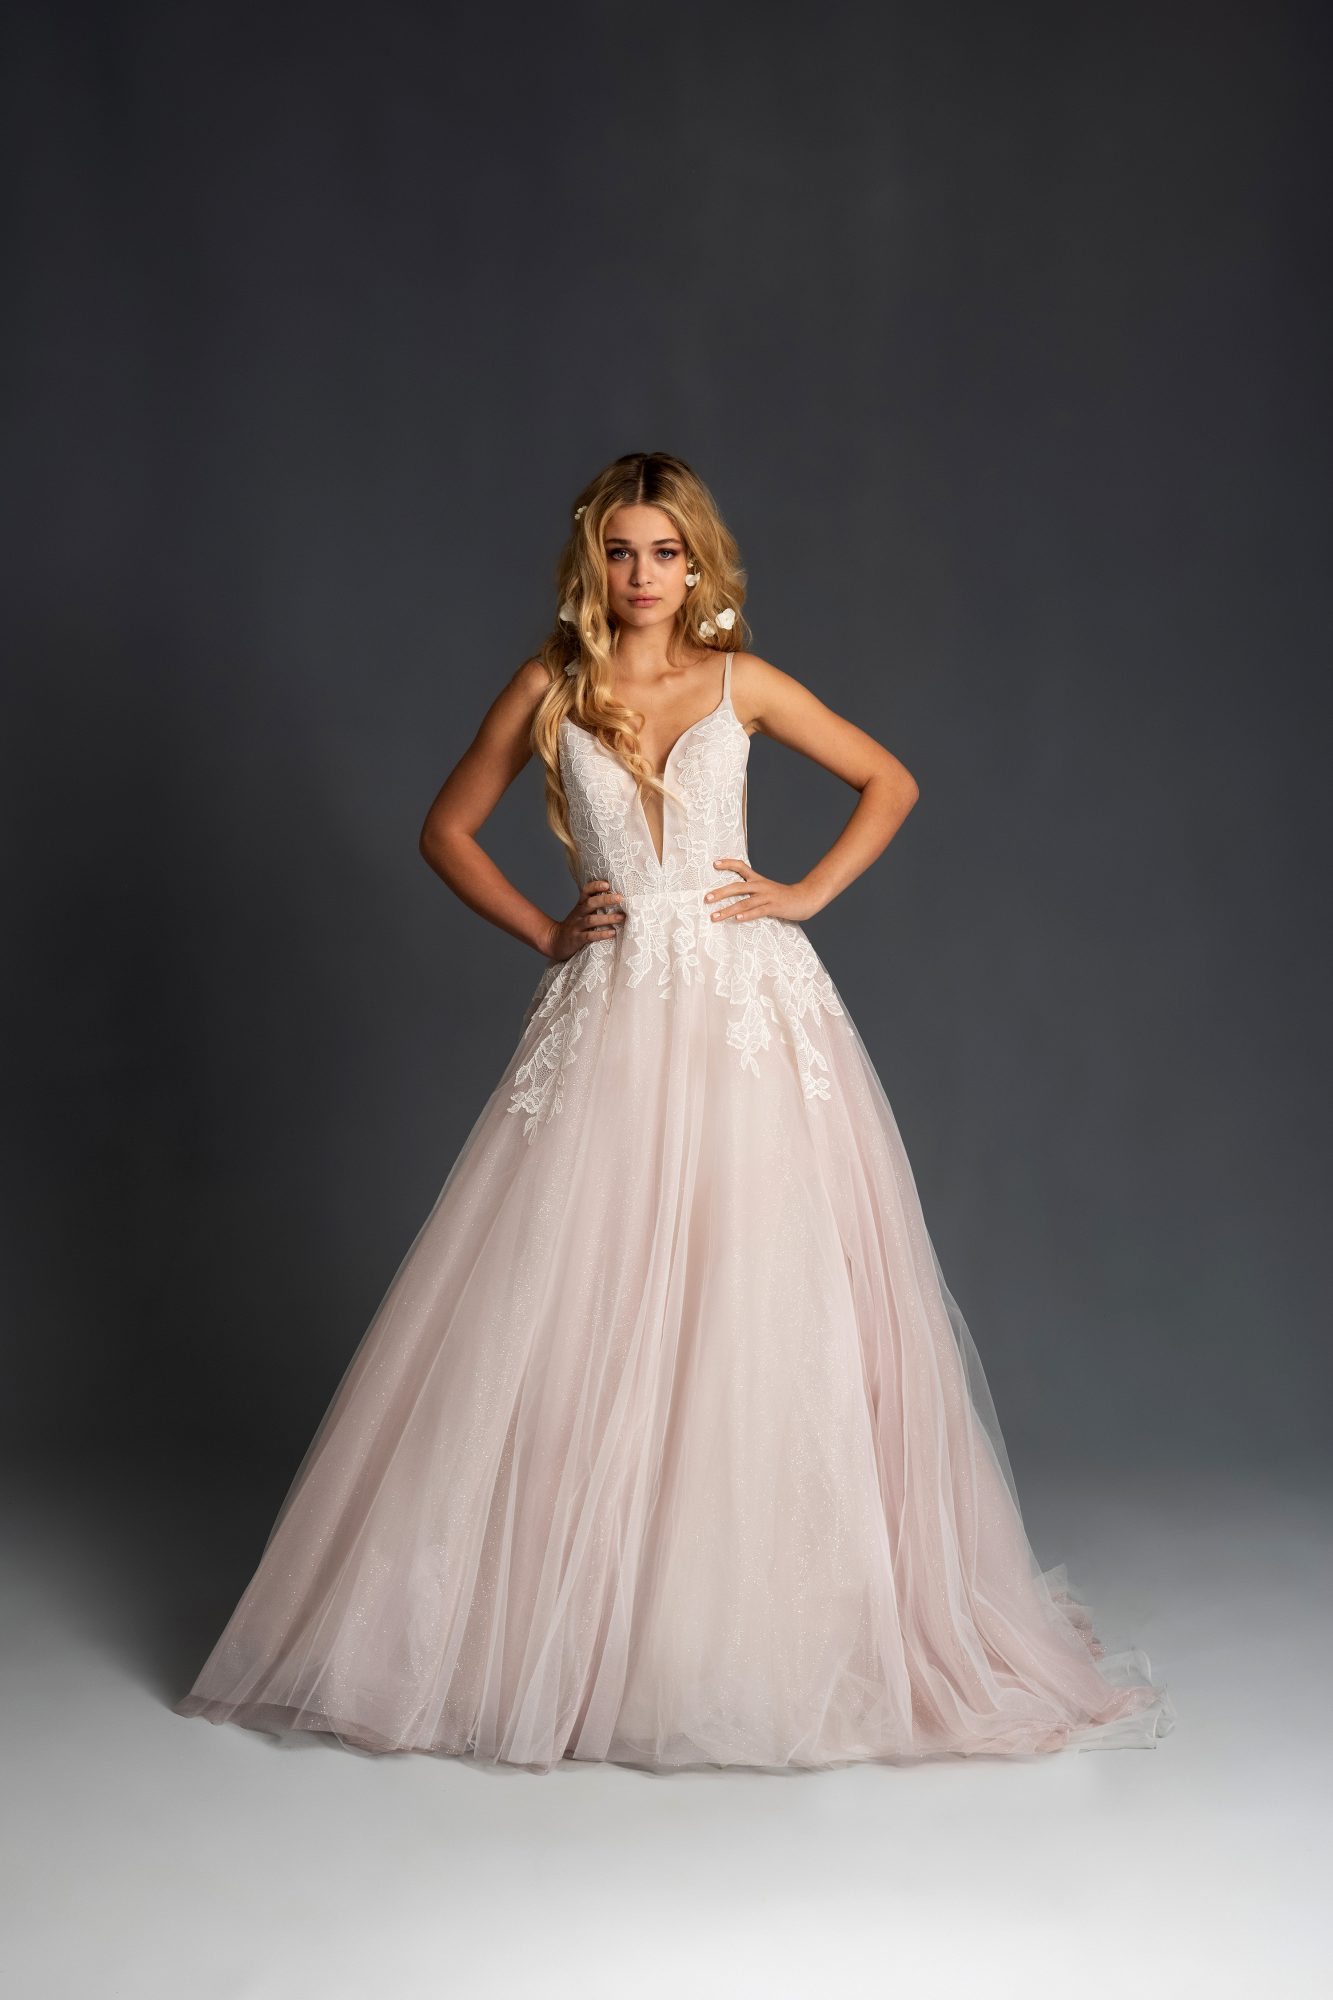 blush hayley paige sleeveless deep v pink tulle ballgown wedding dress spring 2020